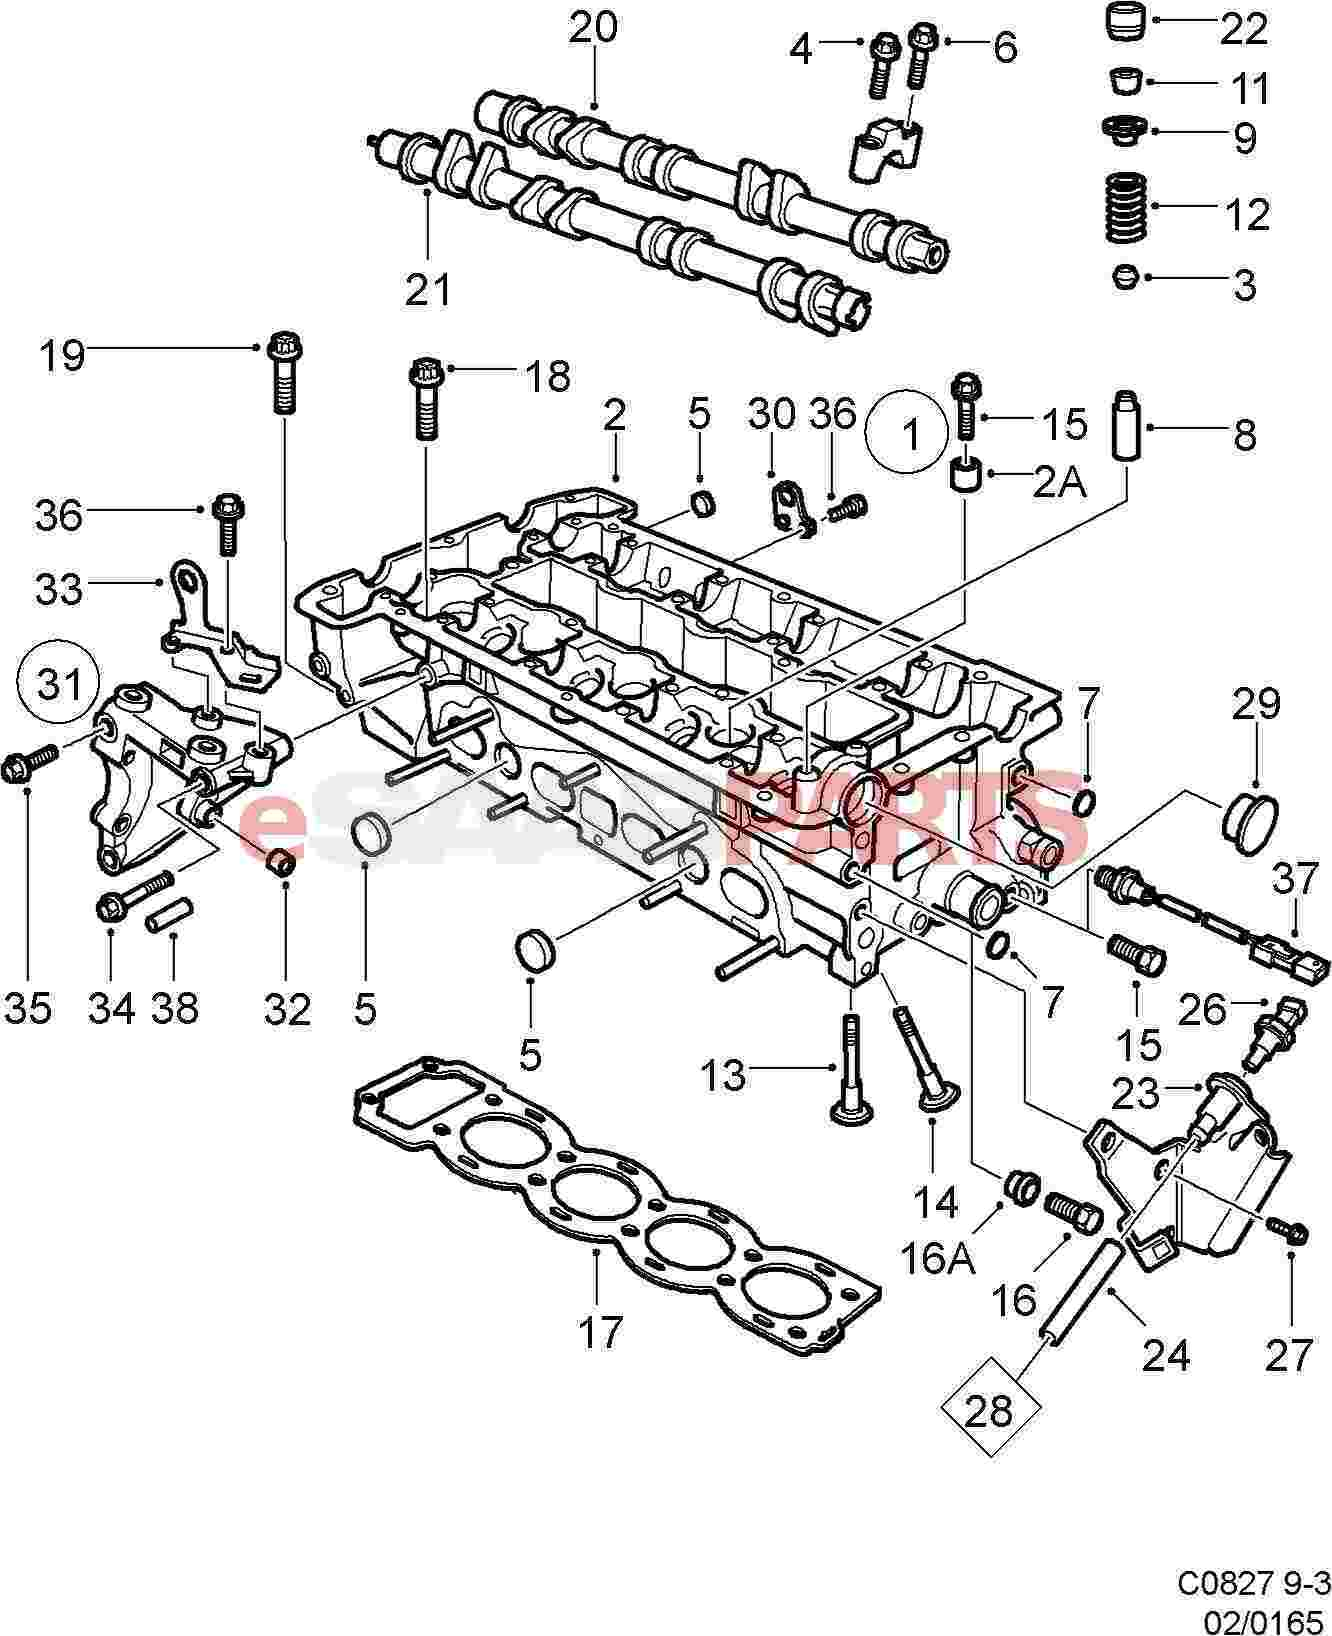 Saab 9 5 Aero 2001 Radio Wiring Diagram Another Blog About 3 Stereo Harness 2002 Audi A6